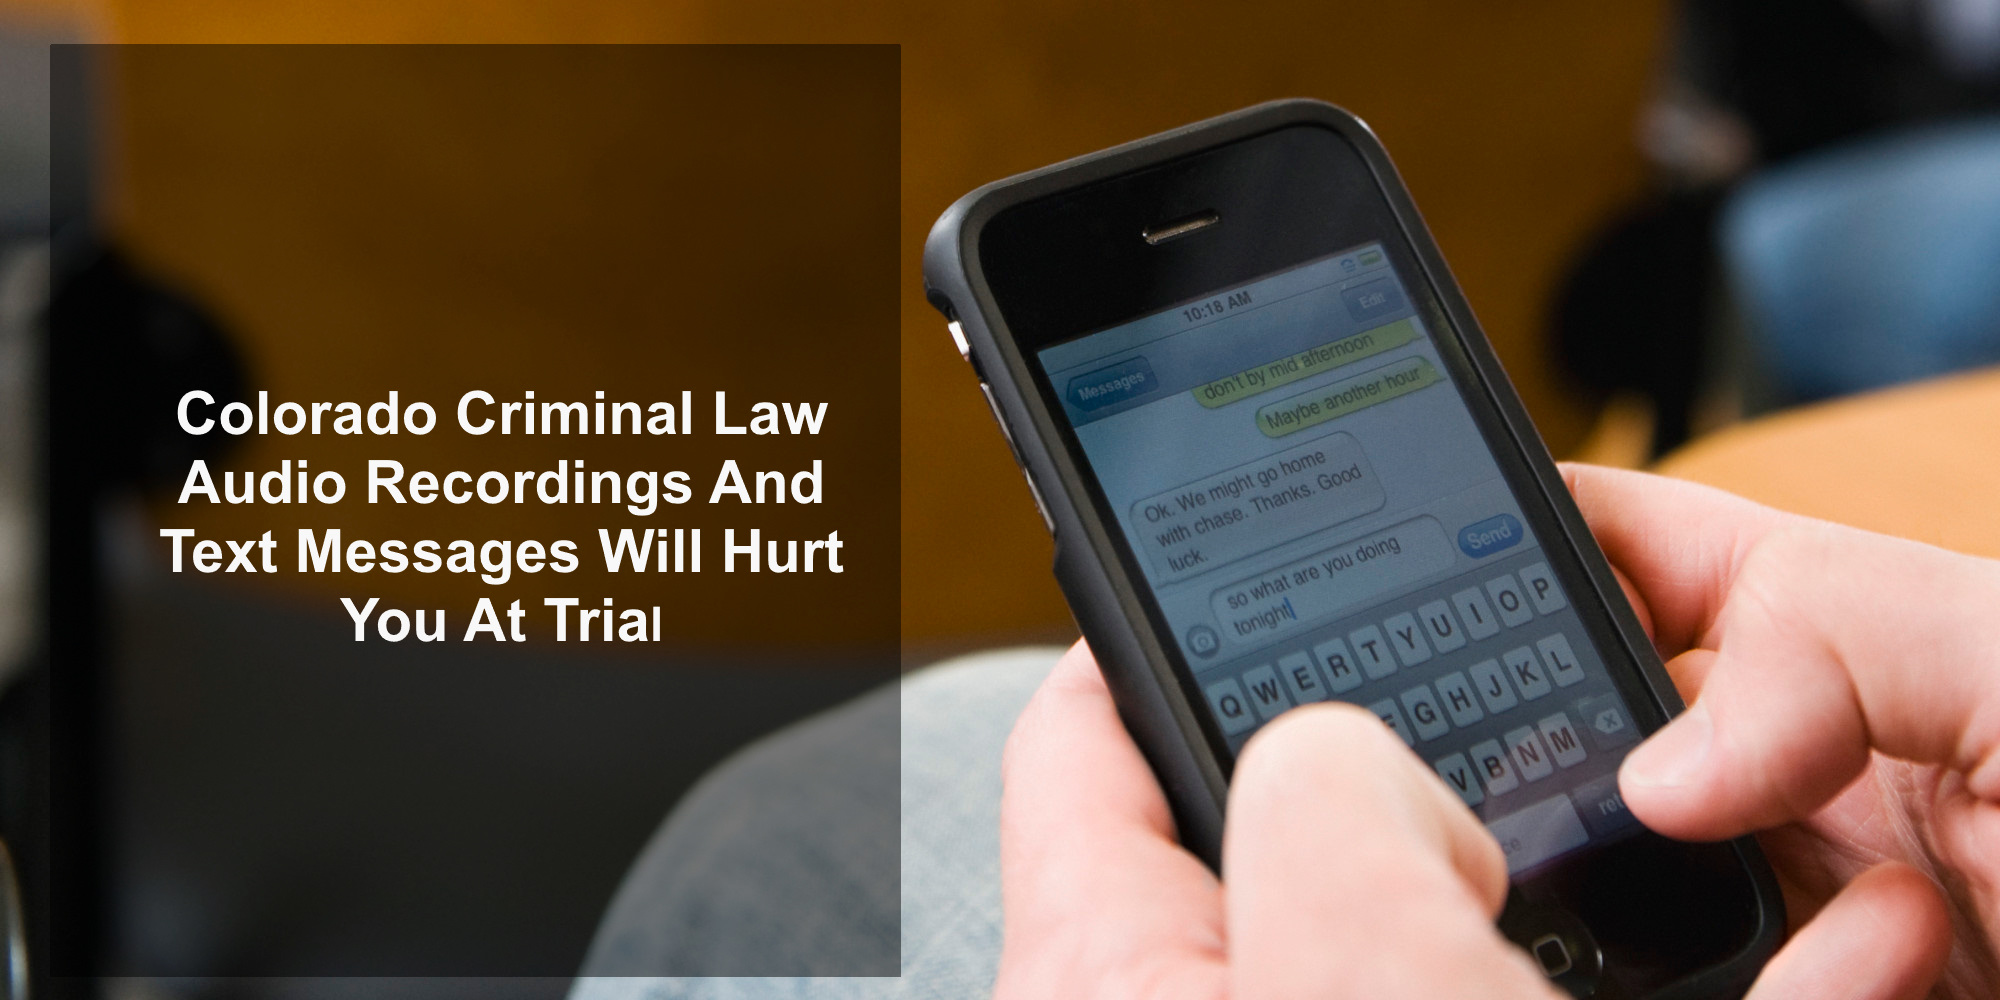 Colorado Criminal Law - Audio Recordings And Text Messages Will Hurt You At Trial